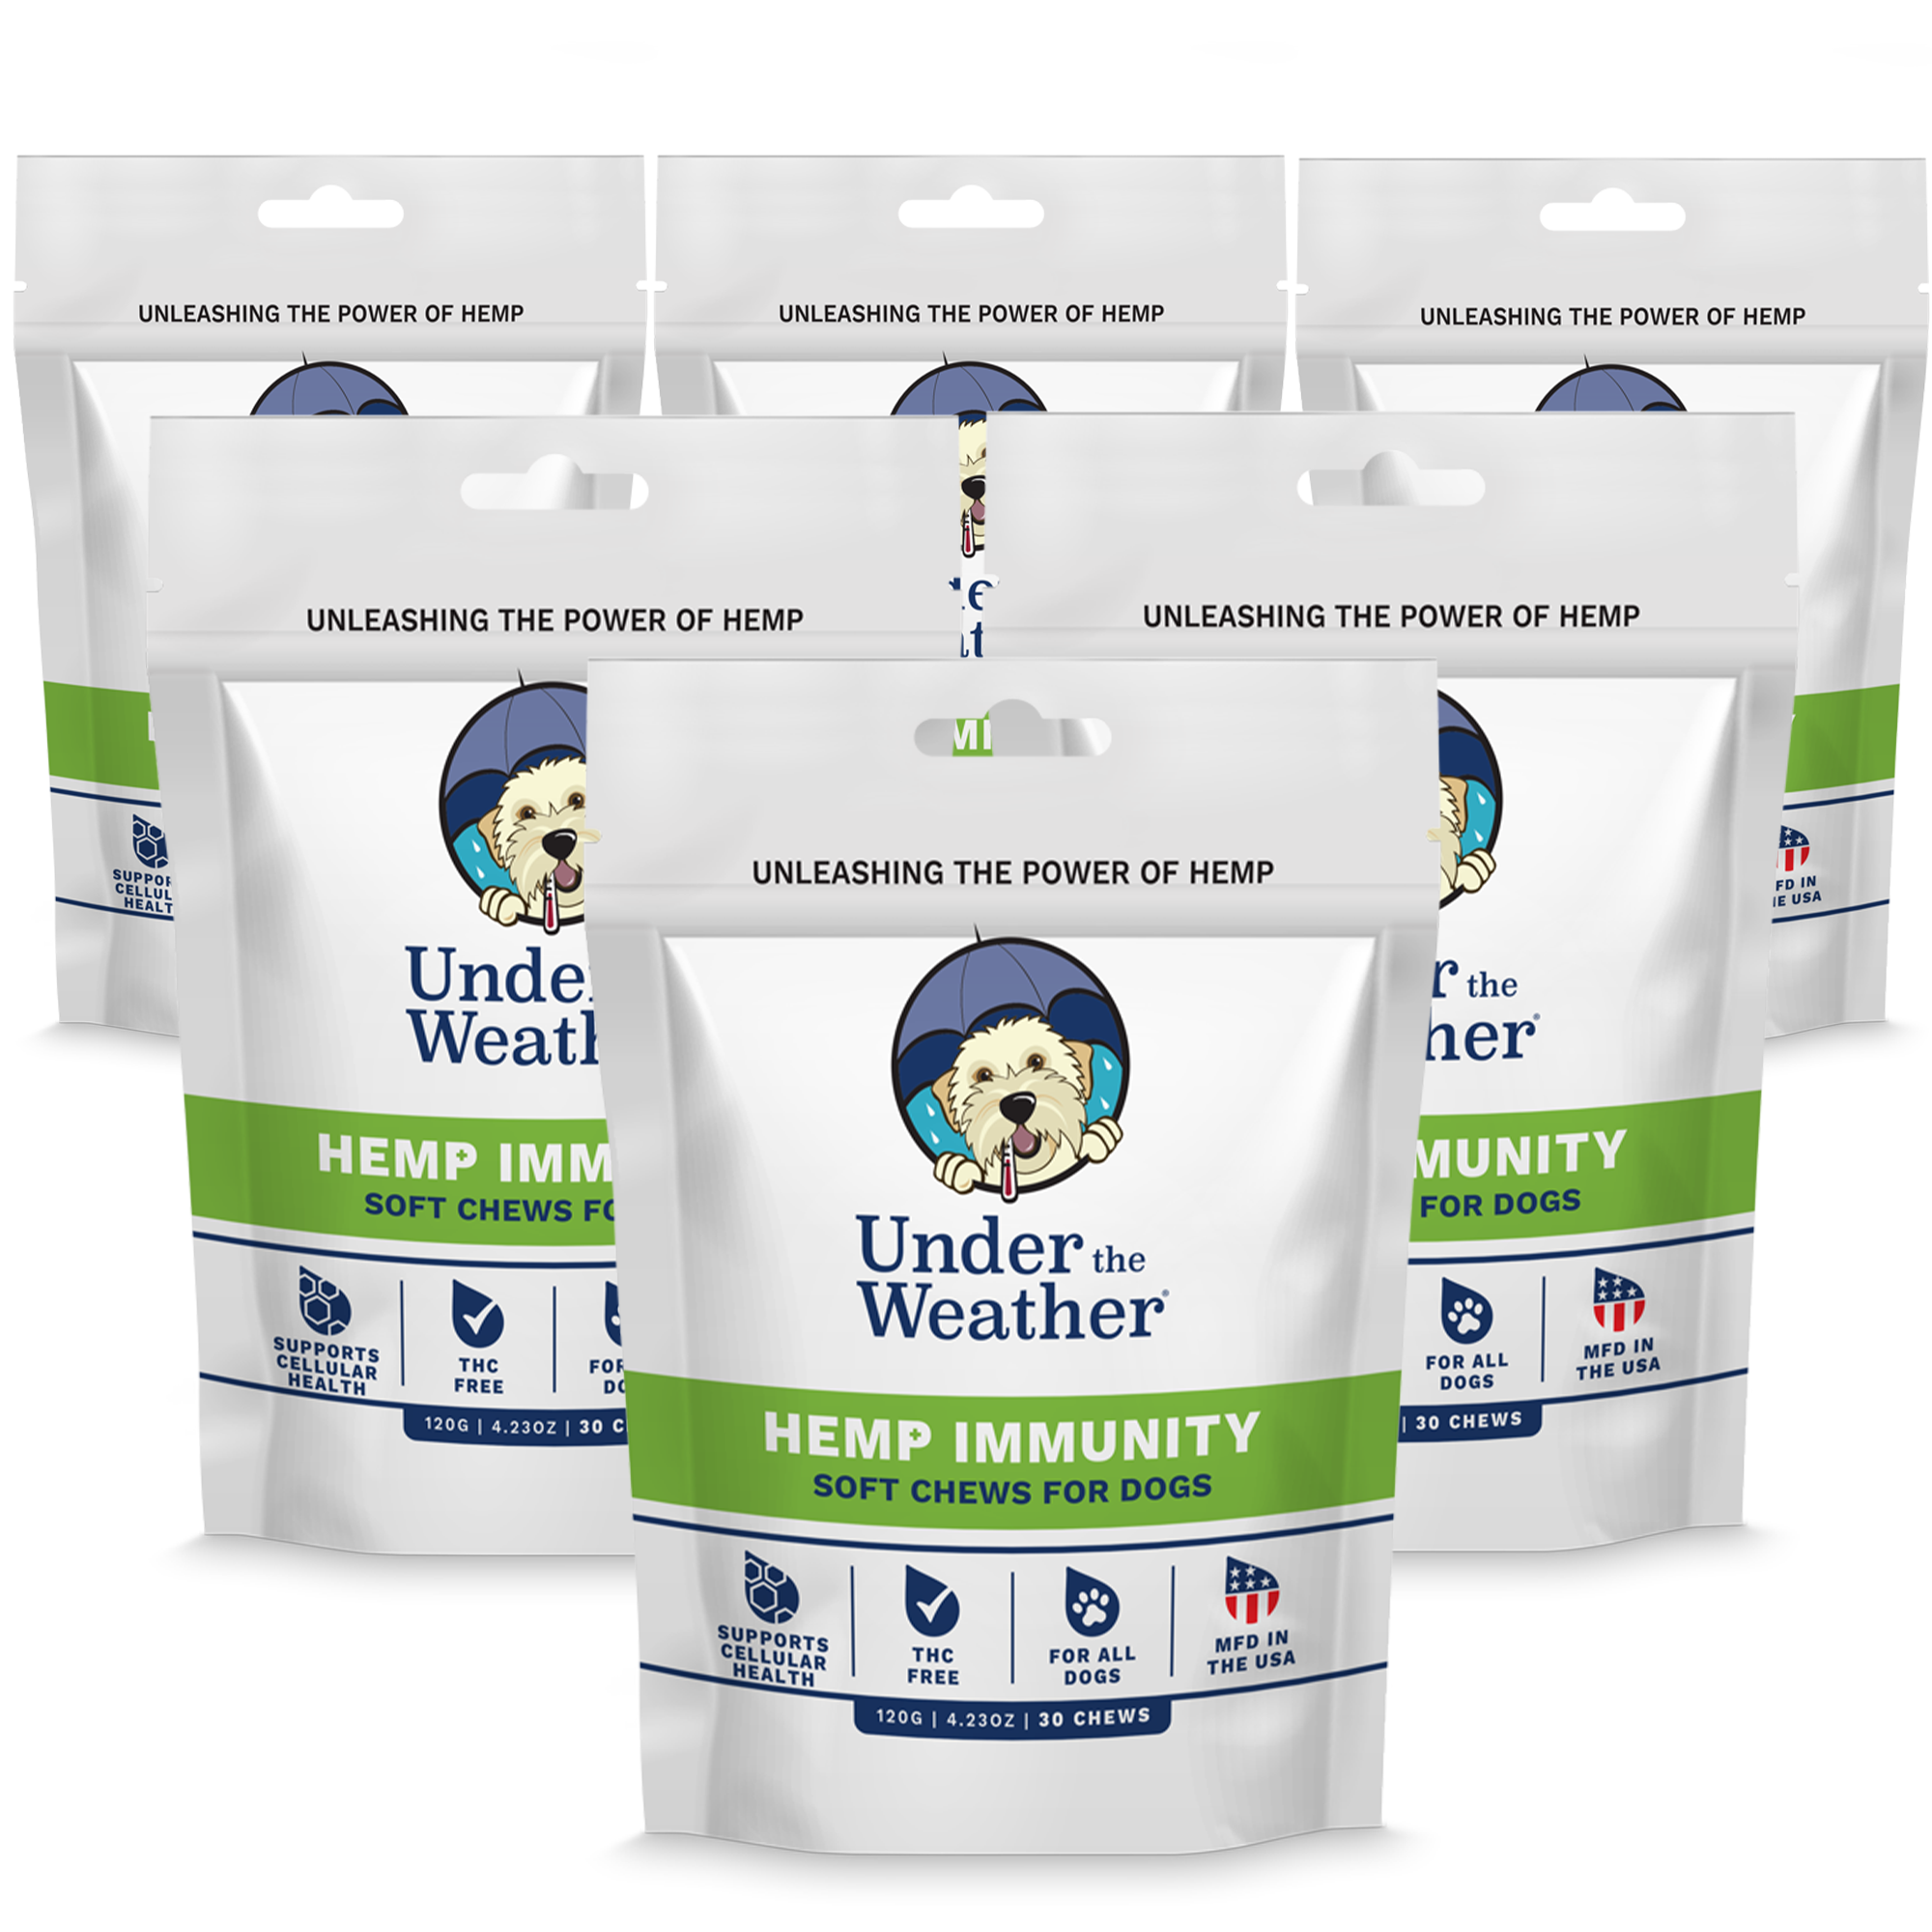 Hemp Immunity Soft Chews For Dogs - 6 Pack